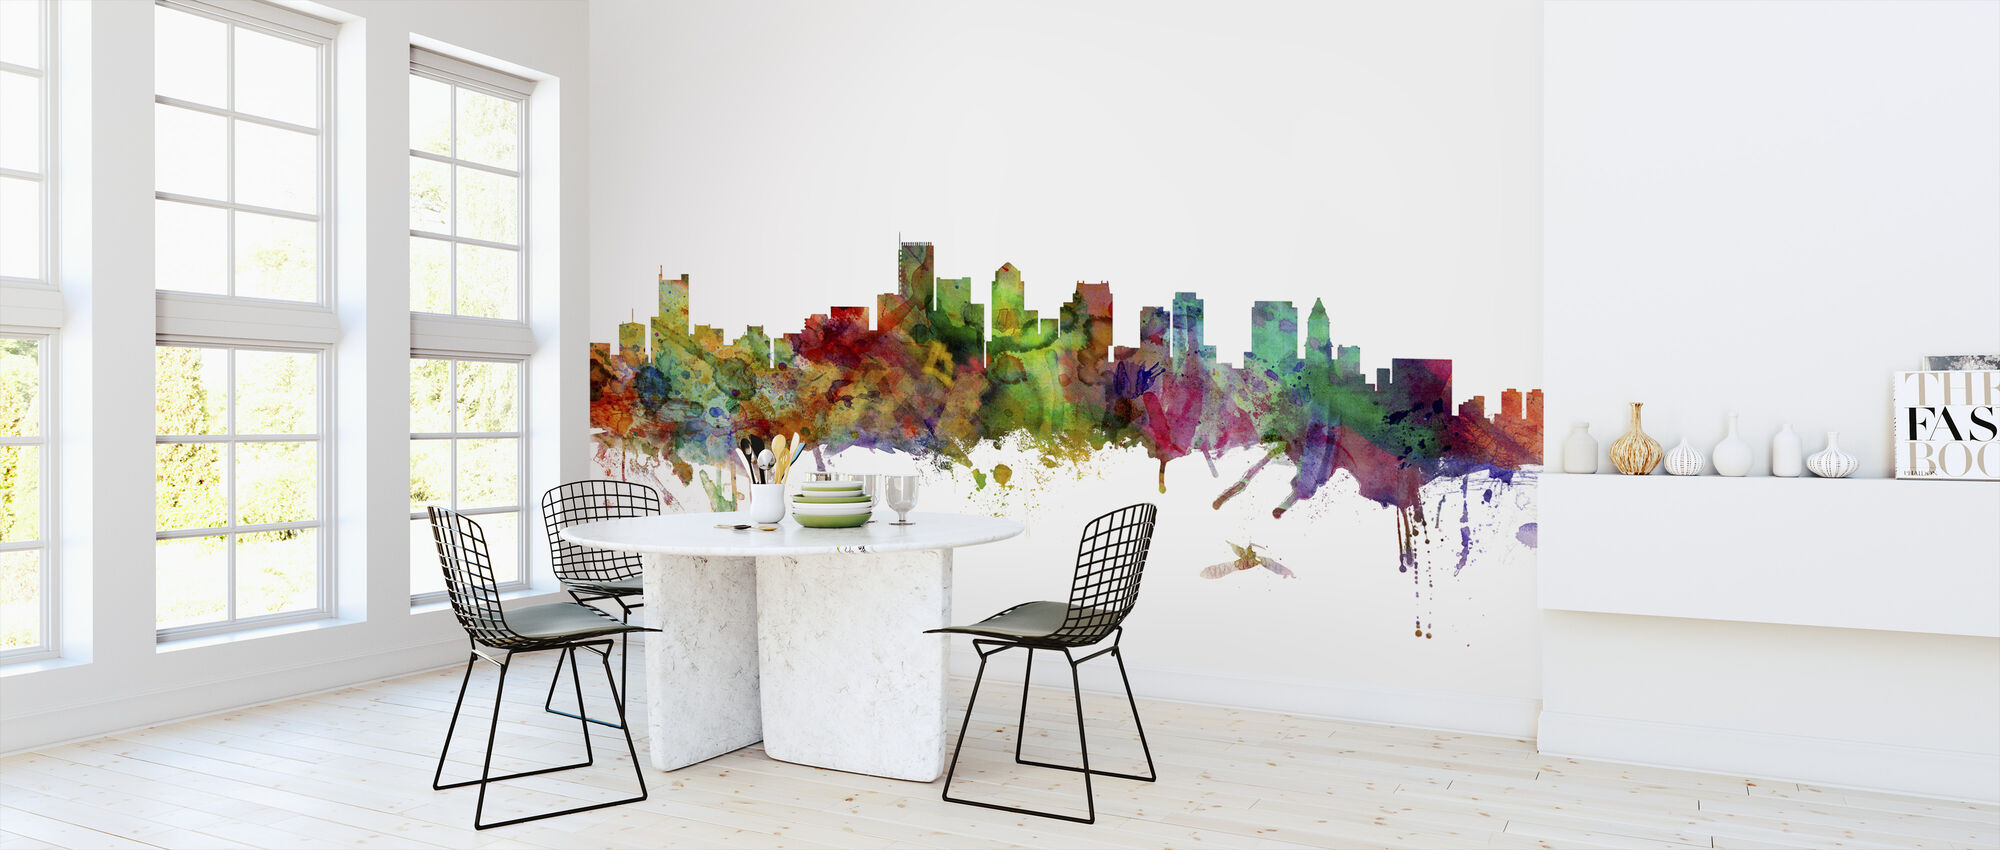 Boston Massachusetts Skyline - Wallpaper - Kitchen